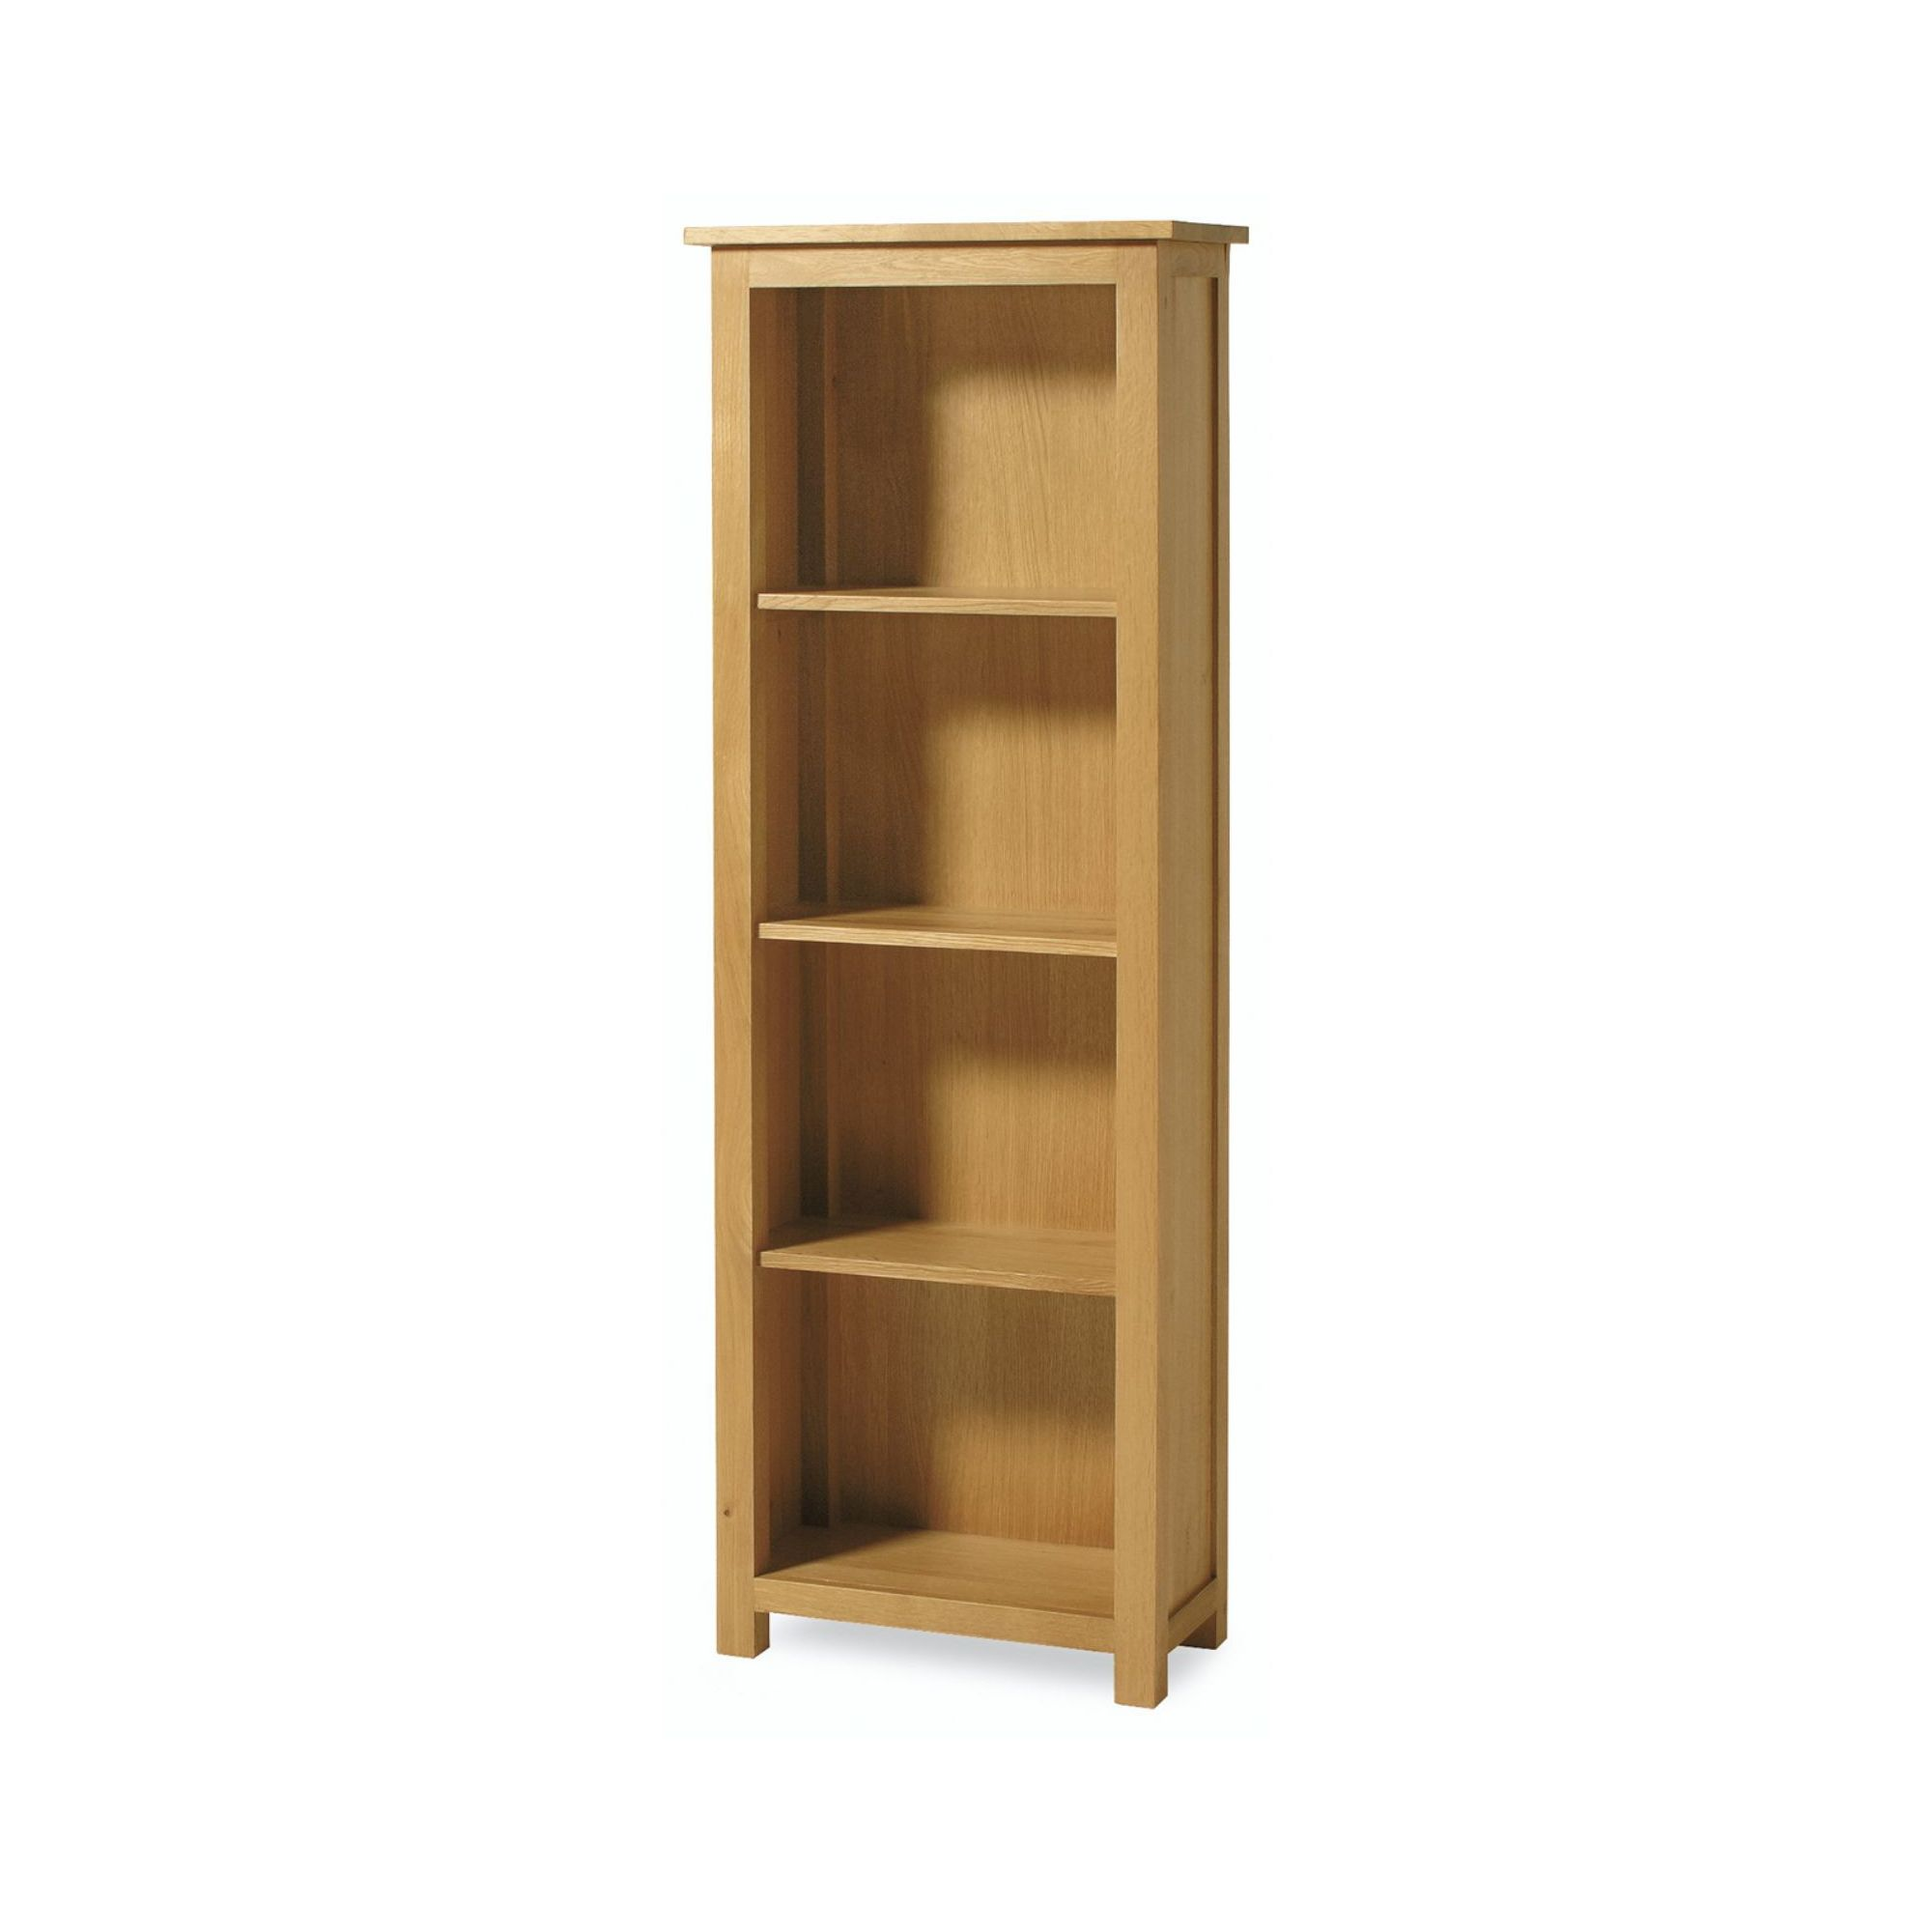 Kelburn Furniture Washington Oak Tall Bookcase at Tesco Direct